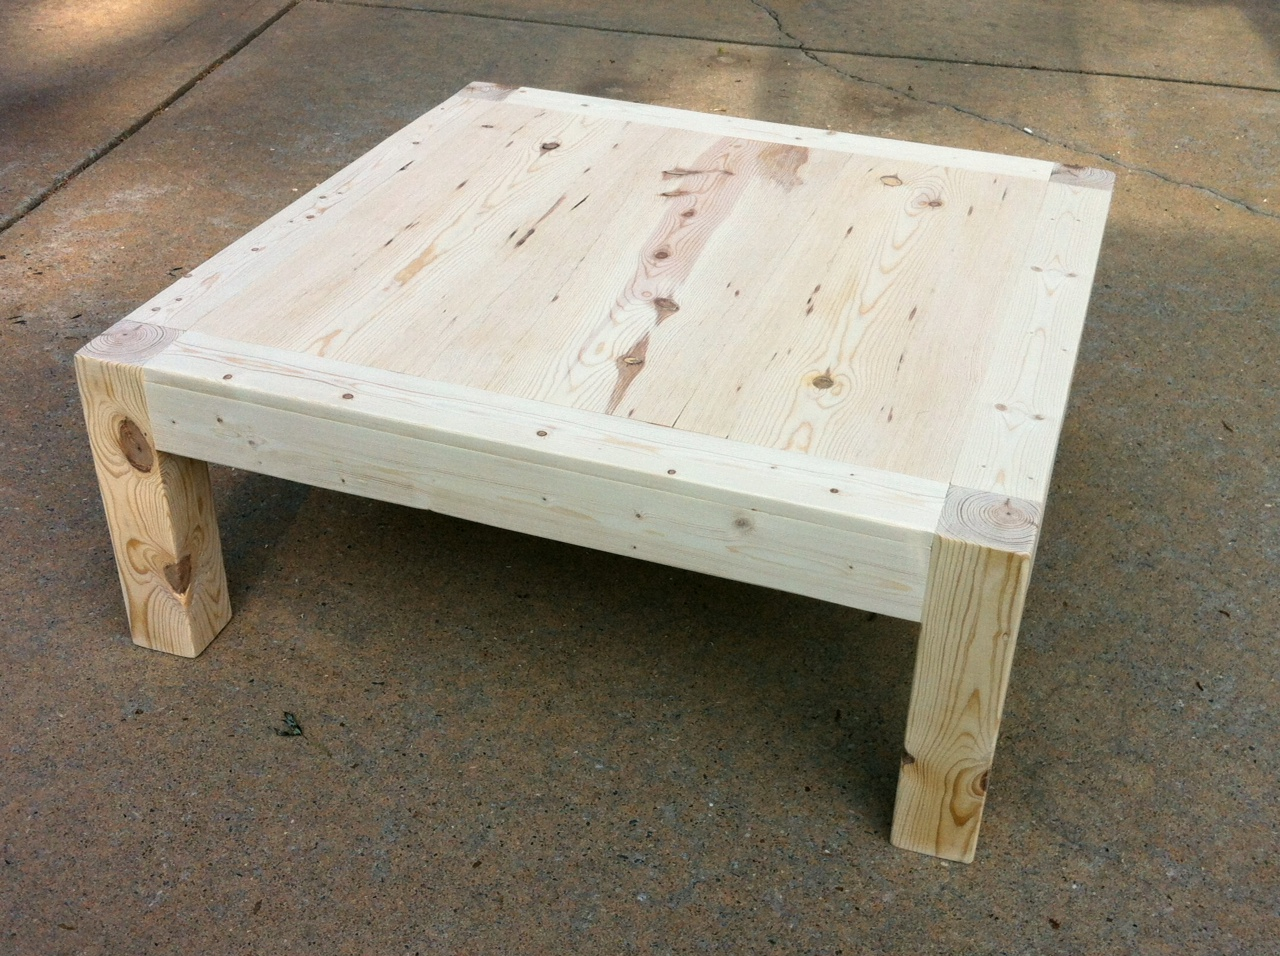 Jajake learn diy 4x4 coffee table for Table design for project